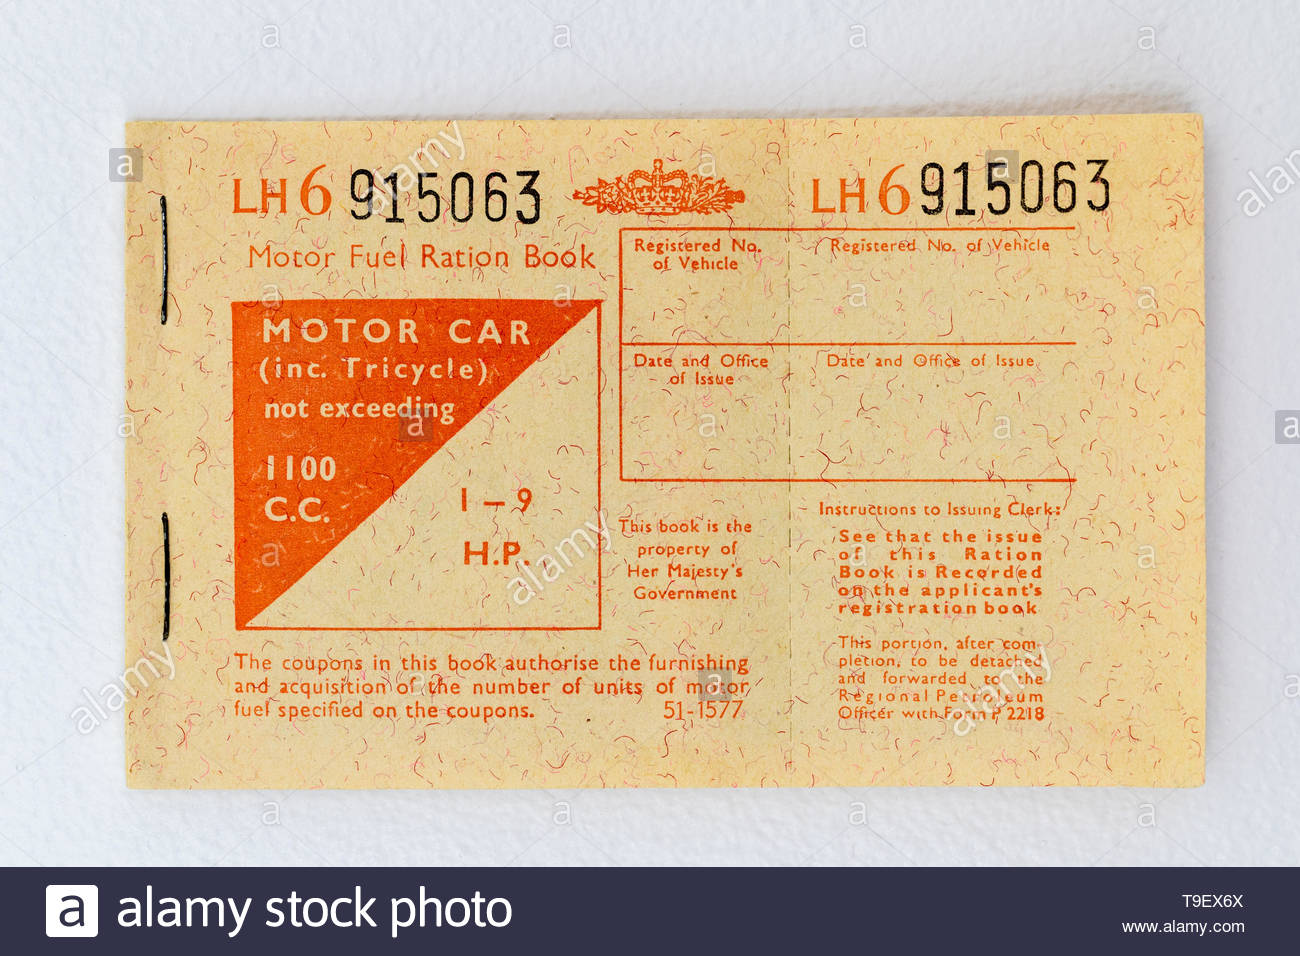 1973 Motor Fuel Ration book. Issued by the UK Government in response to the oil crisis caused by production restrictions duing the Yom Kippur Arab/Isr - Stock Image